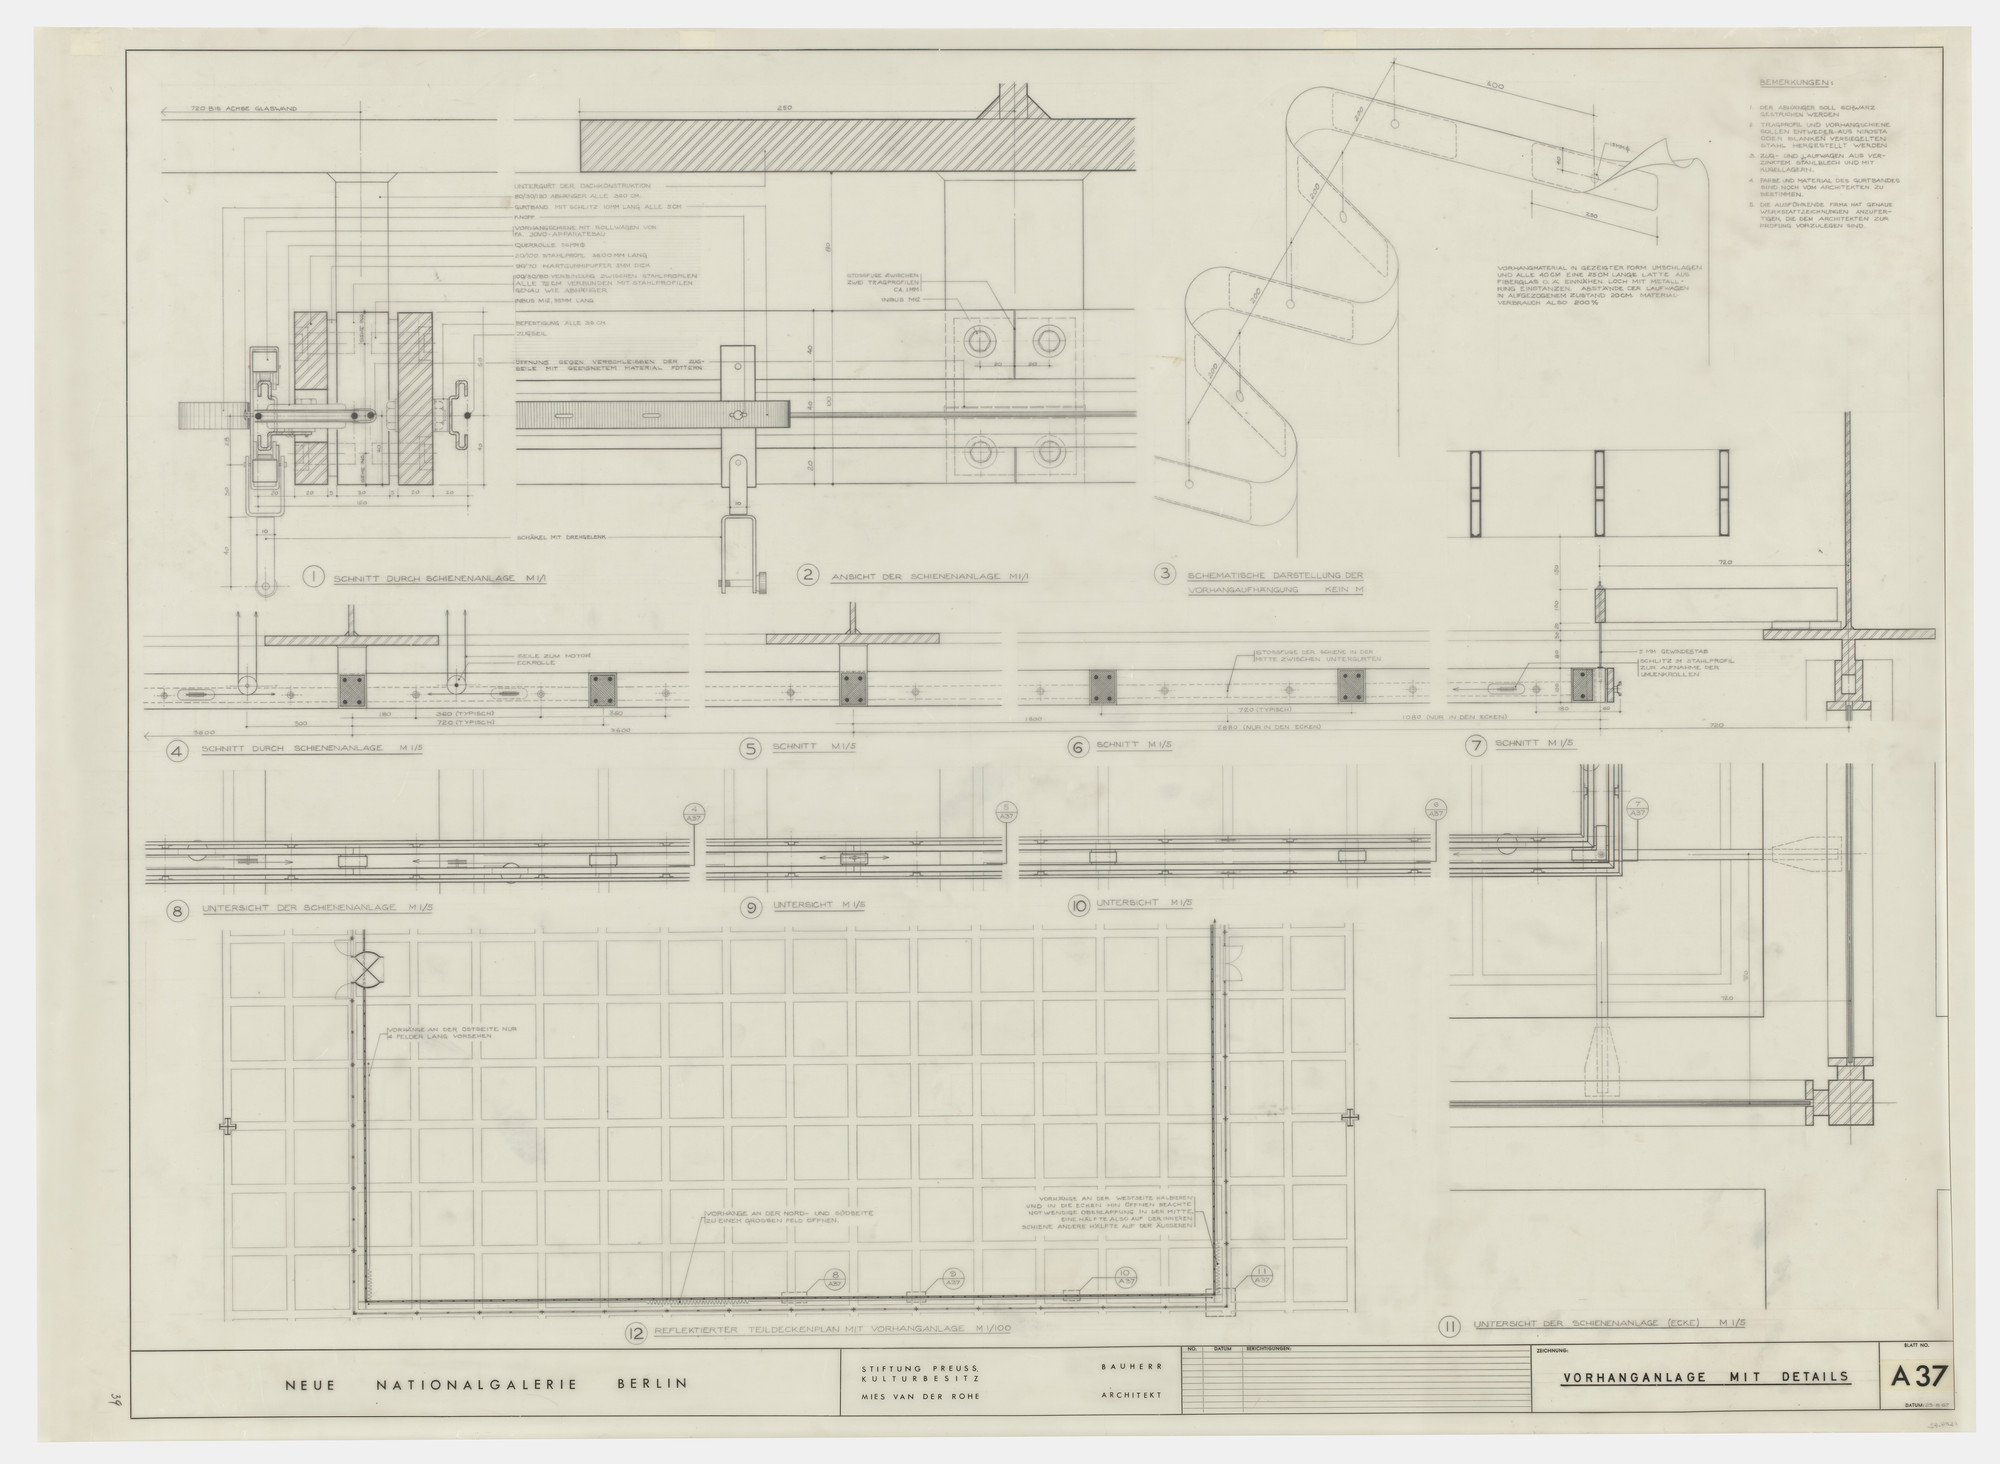 Ludwig Mies van der Rohe. New National Gallery, Berlin, Germany (Curtain rods with details. Plans, sections, and isometric view). c. 1962-68